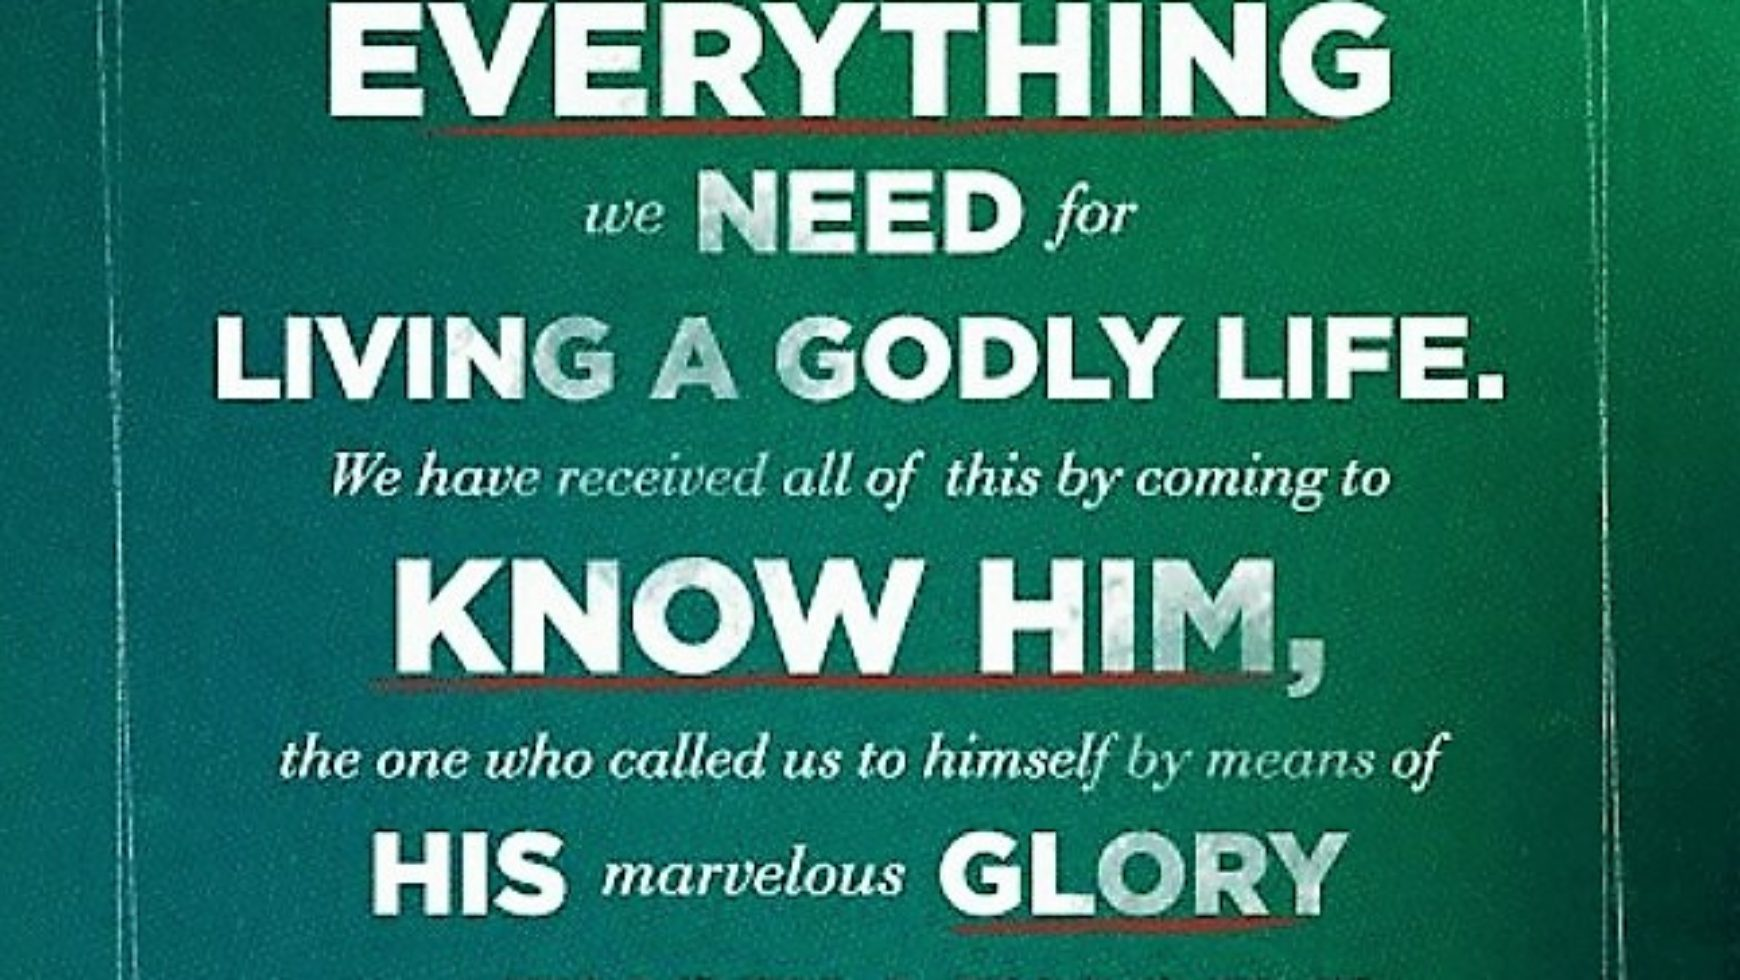 His divine power has granted to us all things